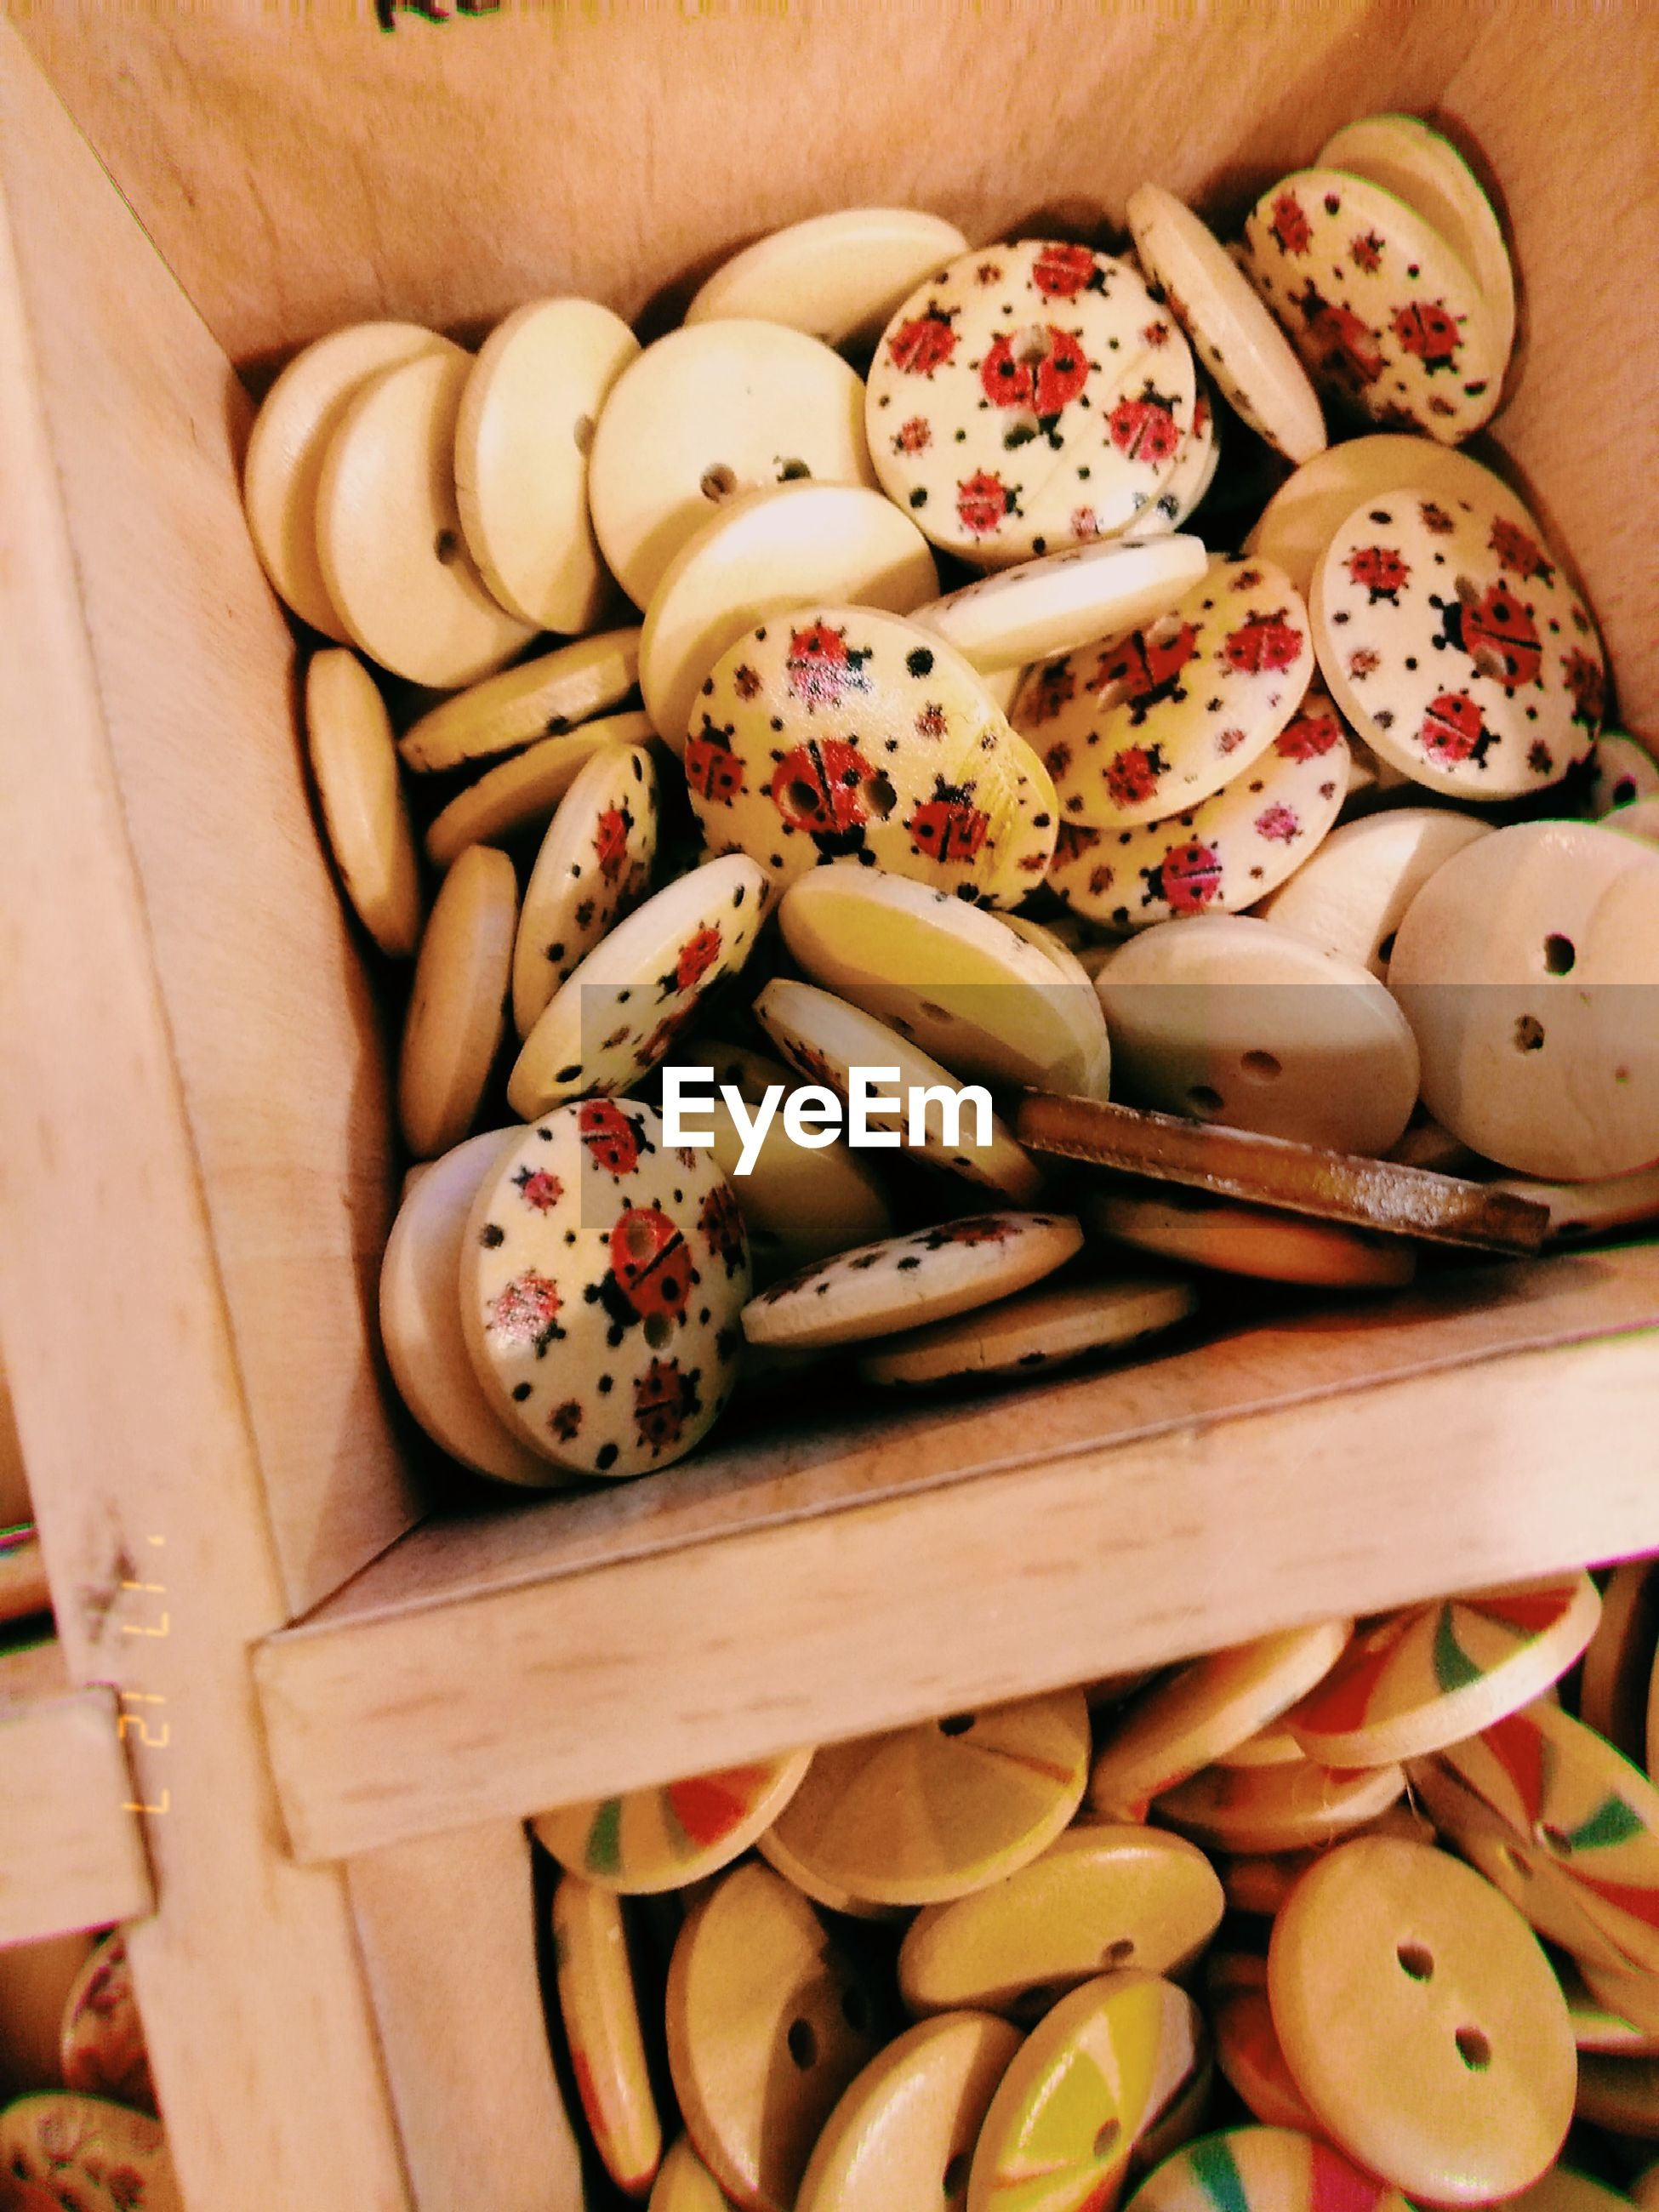 High angle view of cookies in wooden container